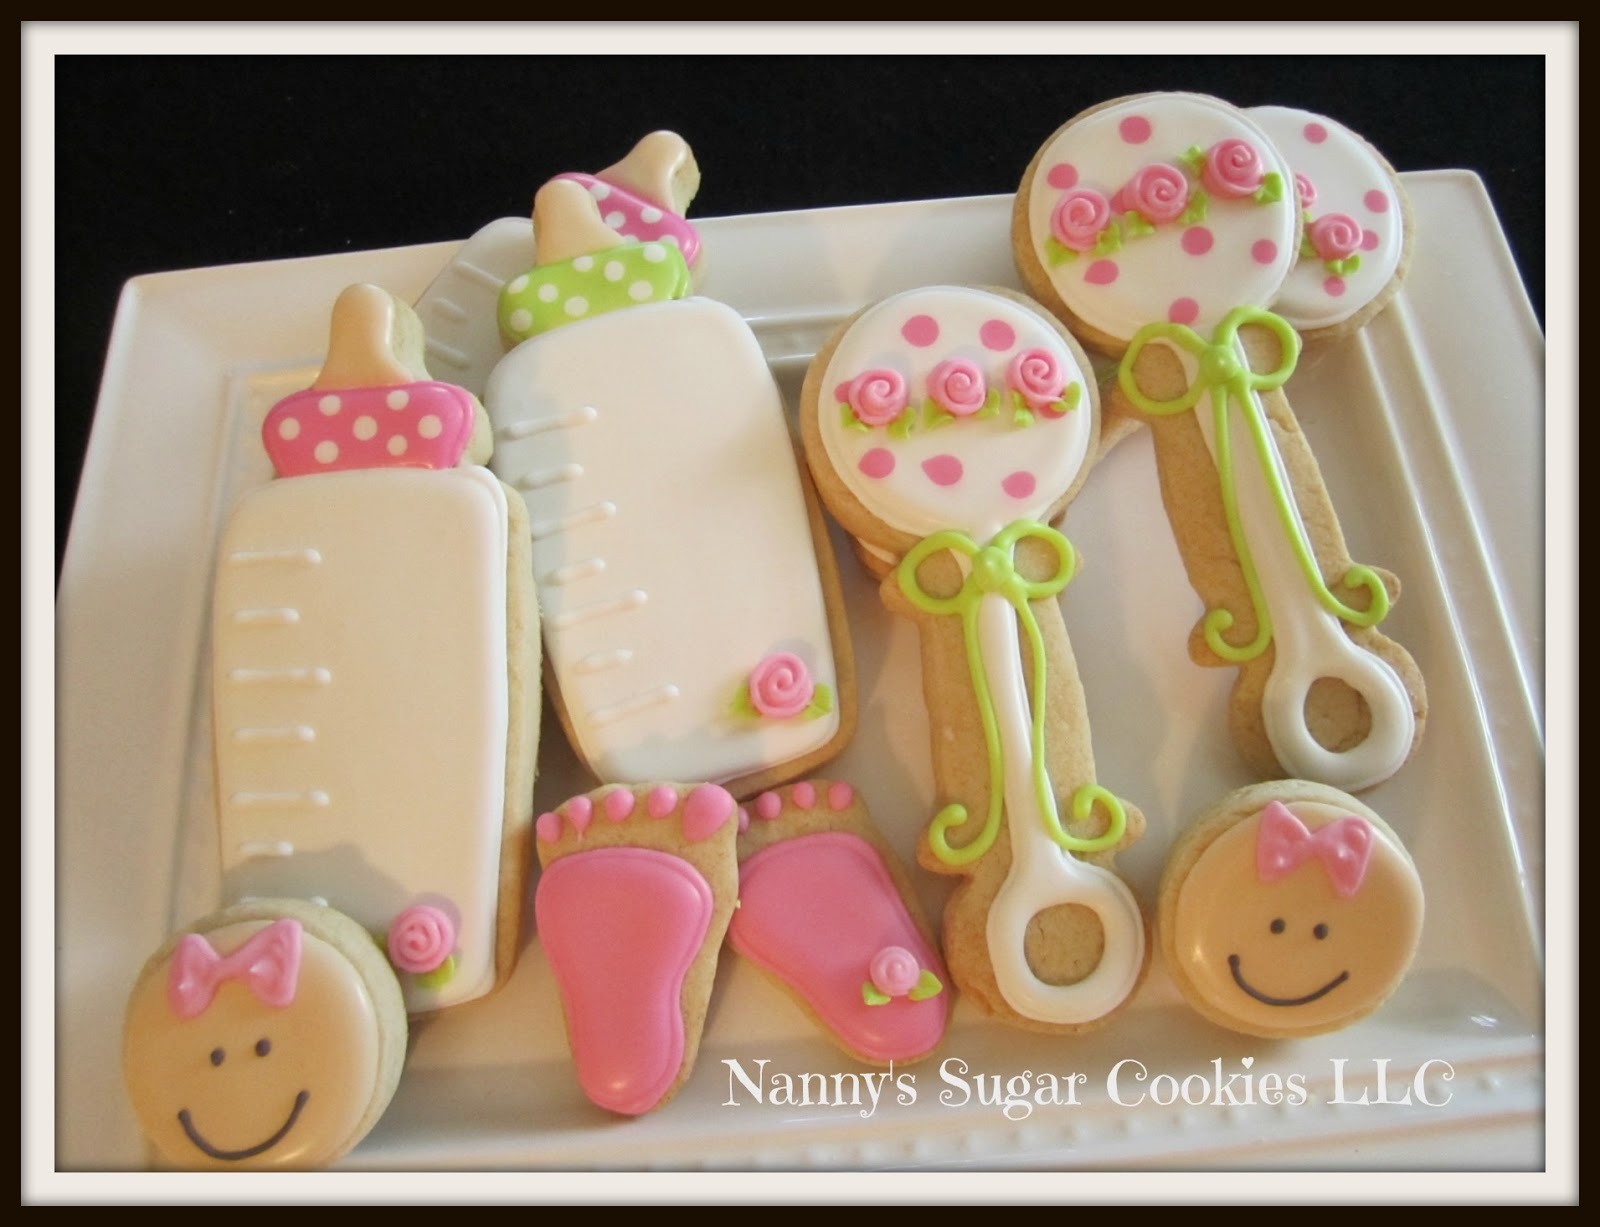 nanny 39 s sugar cookies llc baby shower cookie favors